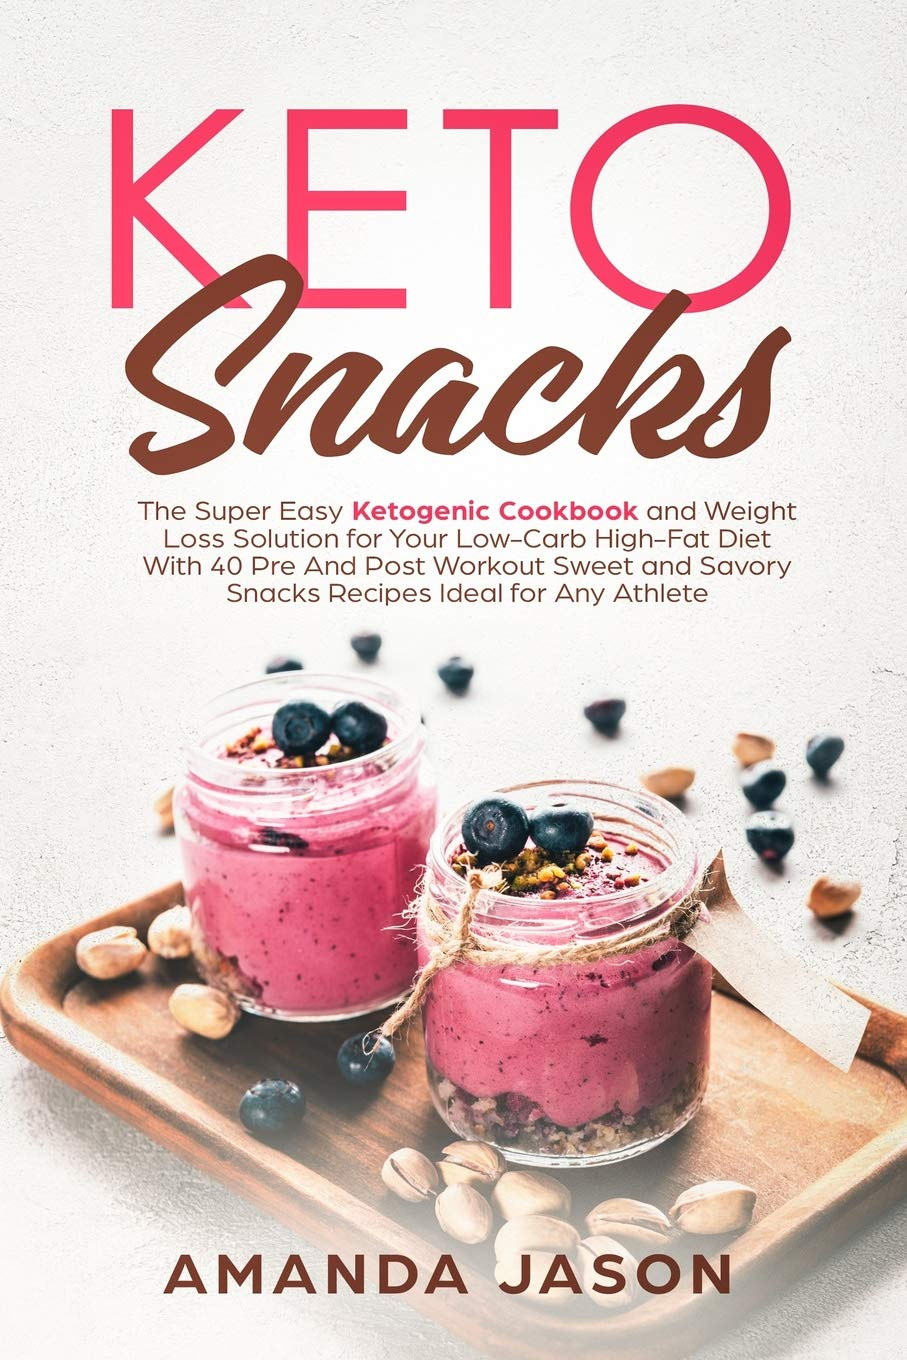 Keto Snacks Ketogenic Cookbook Solution product image